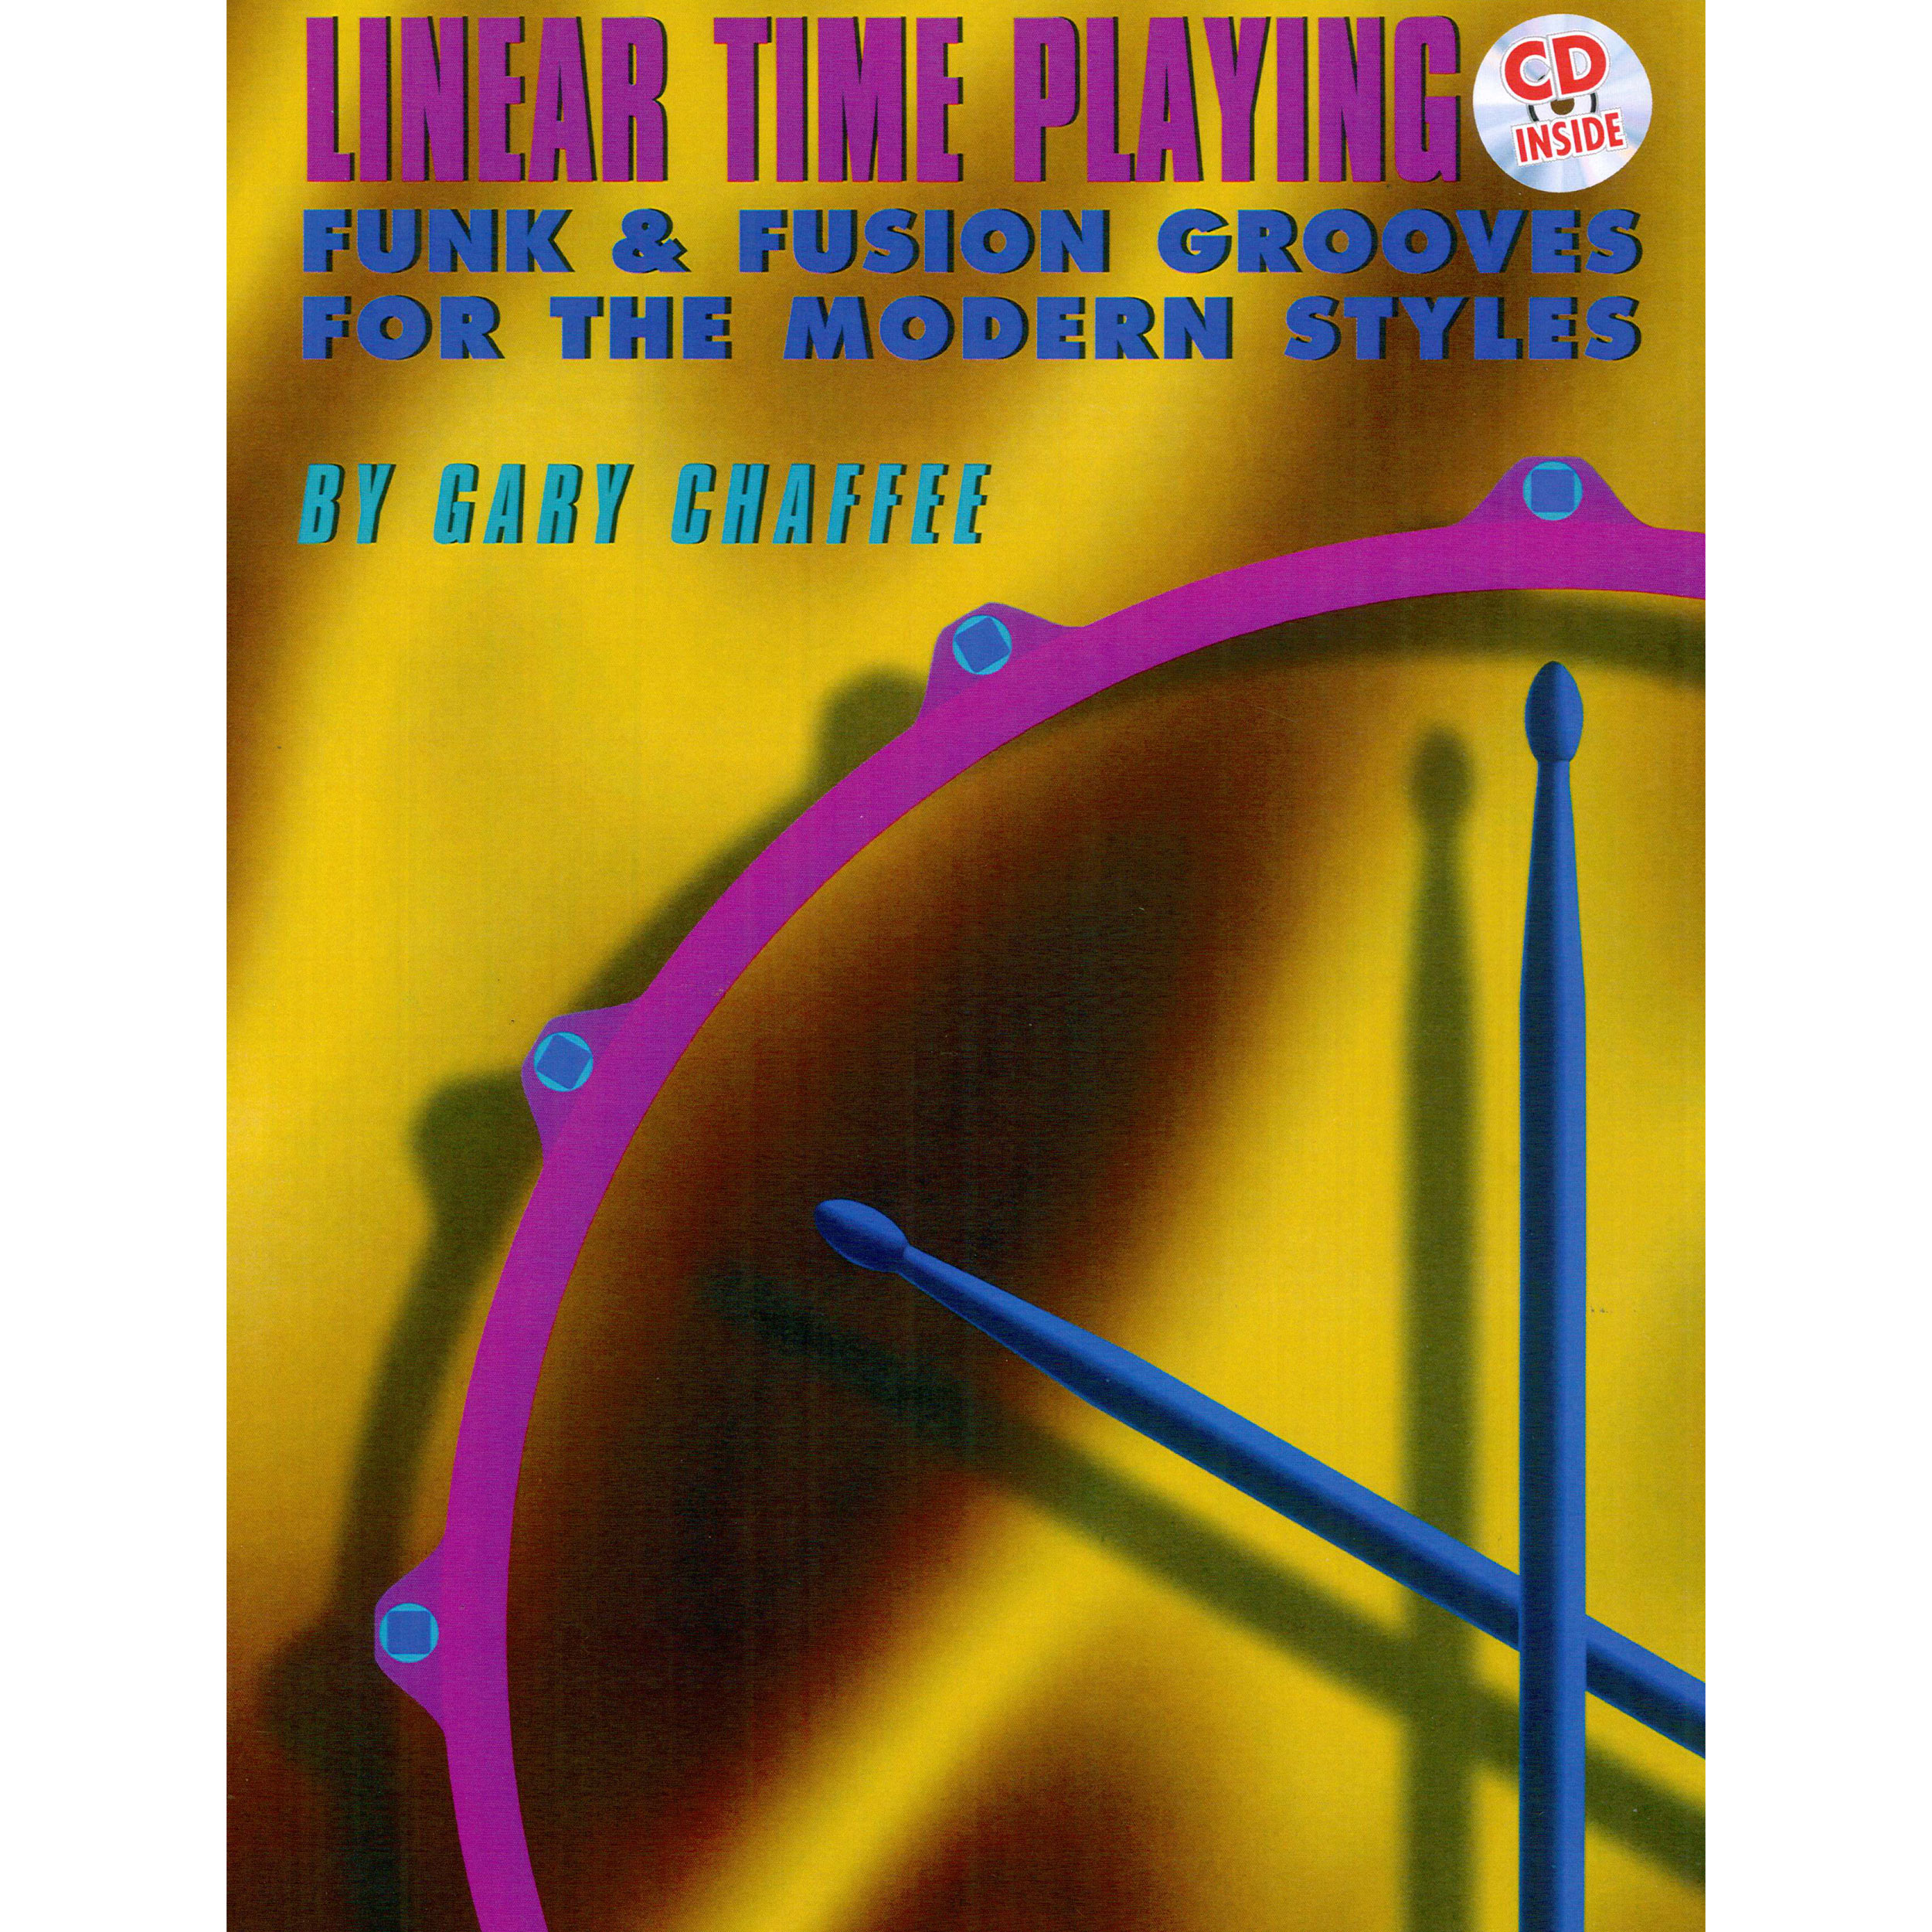 Linear Time Playing by Gary Chaffee